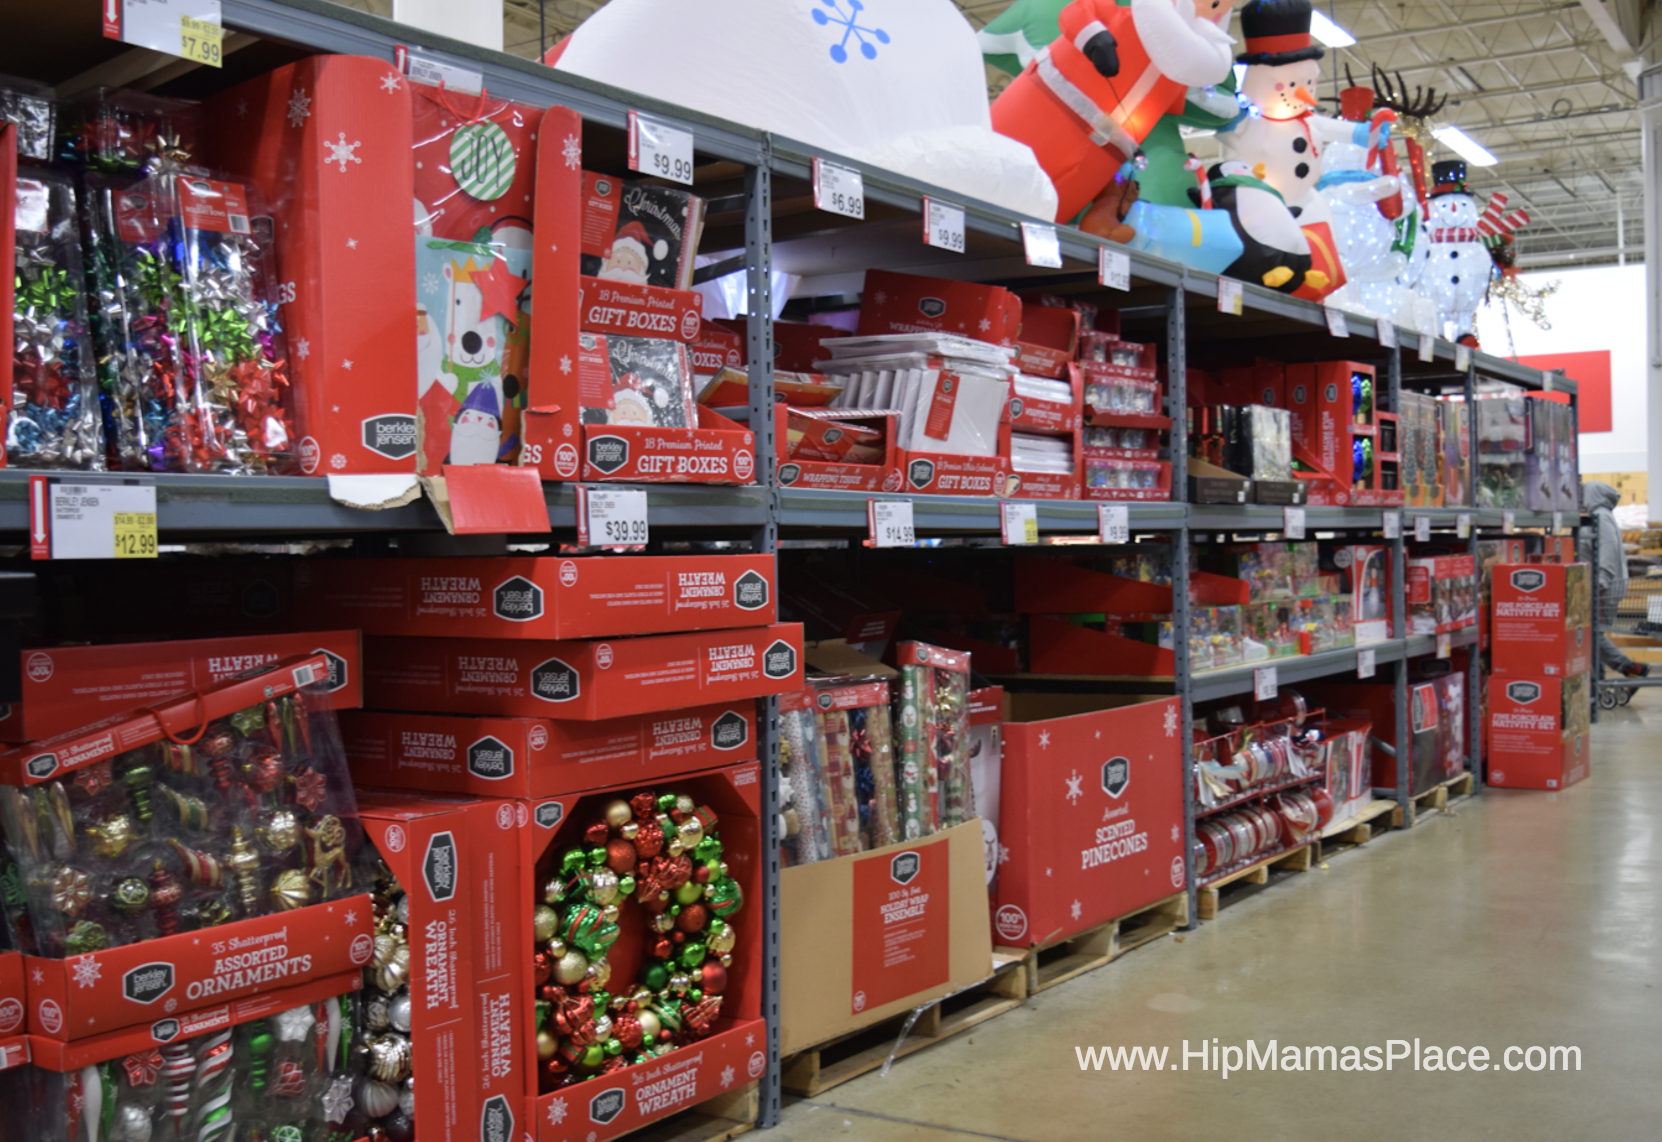 Looking for new décor items to deck your halls this holiday season? BJ's also has a wide variety of décor from holiday inflatables, ornaments and garlands!